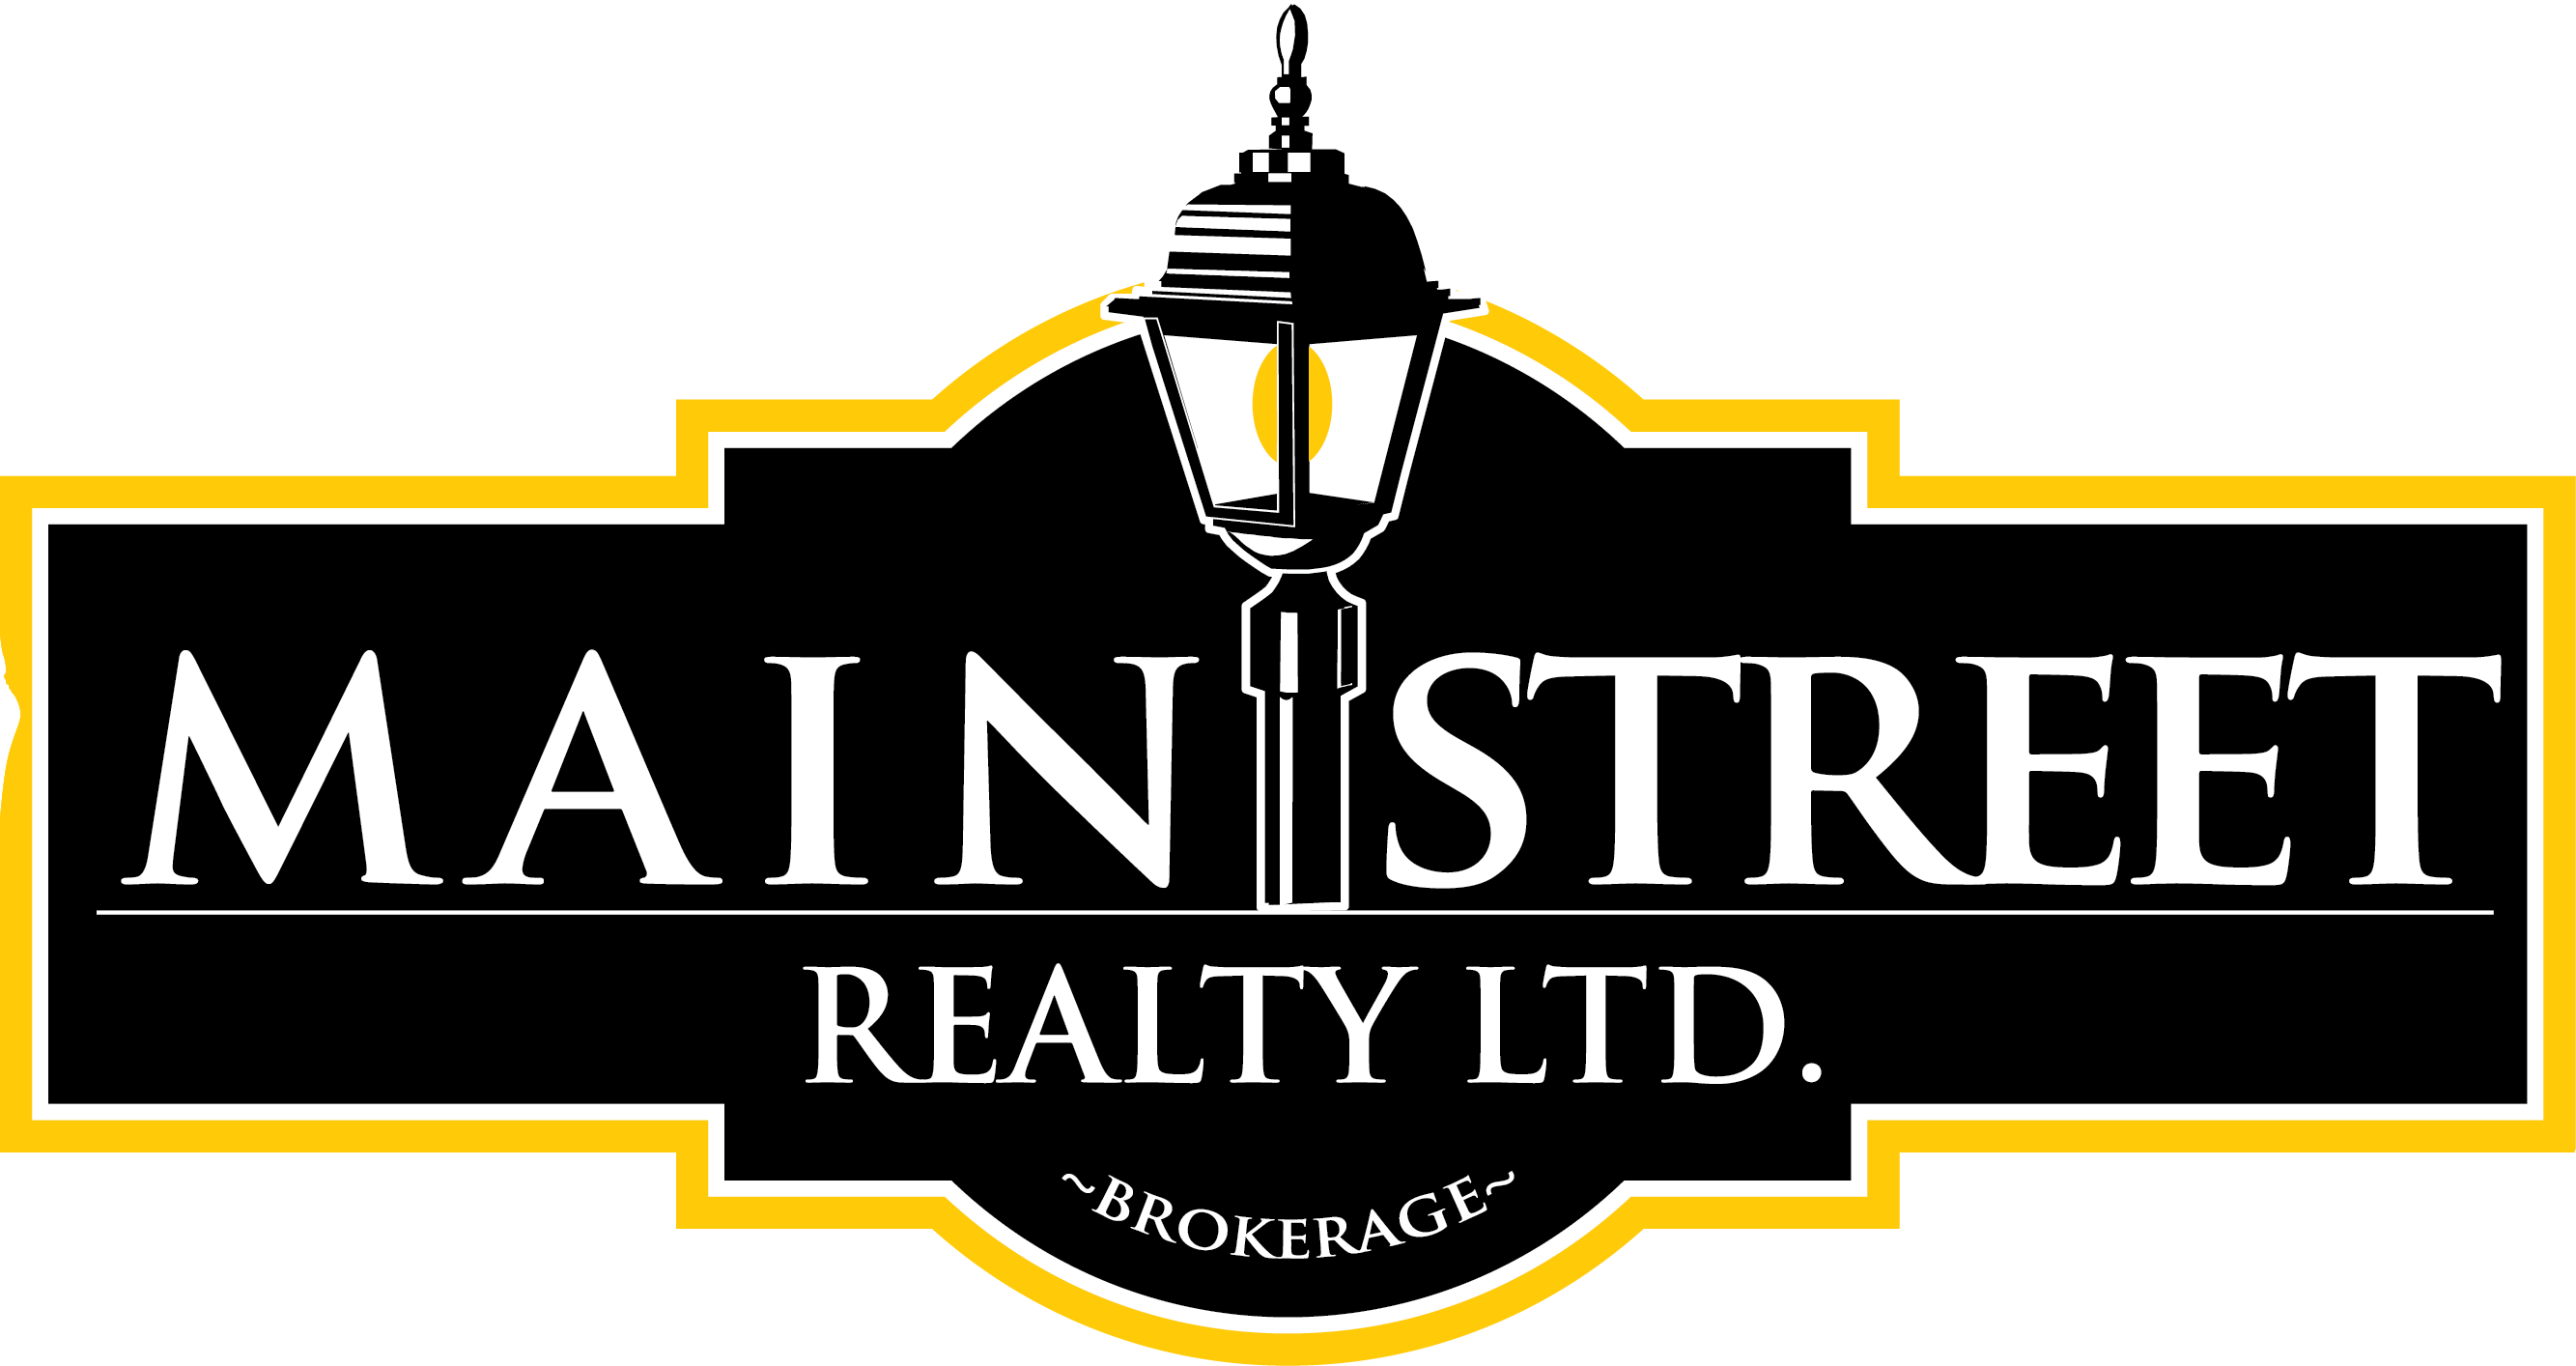 Main Street Realty Ltd., Brokerage *